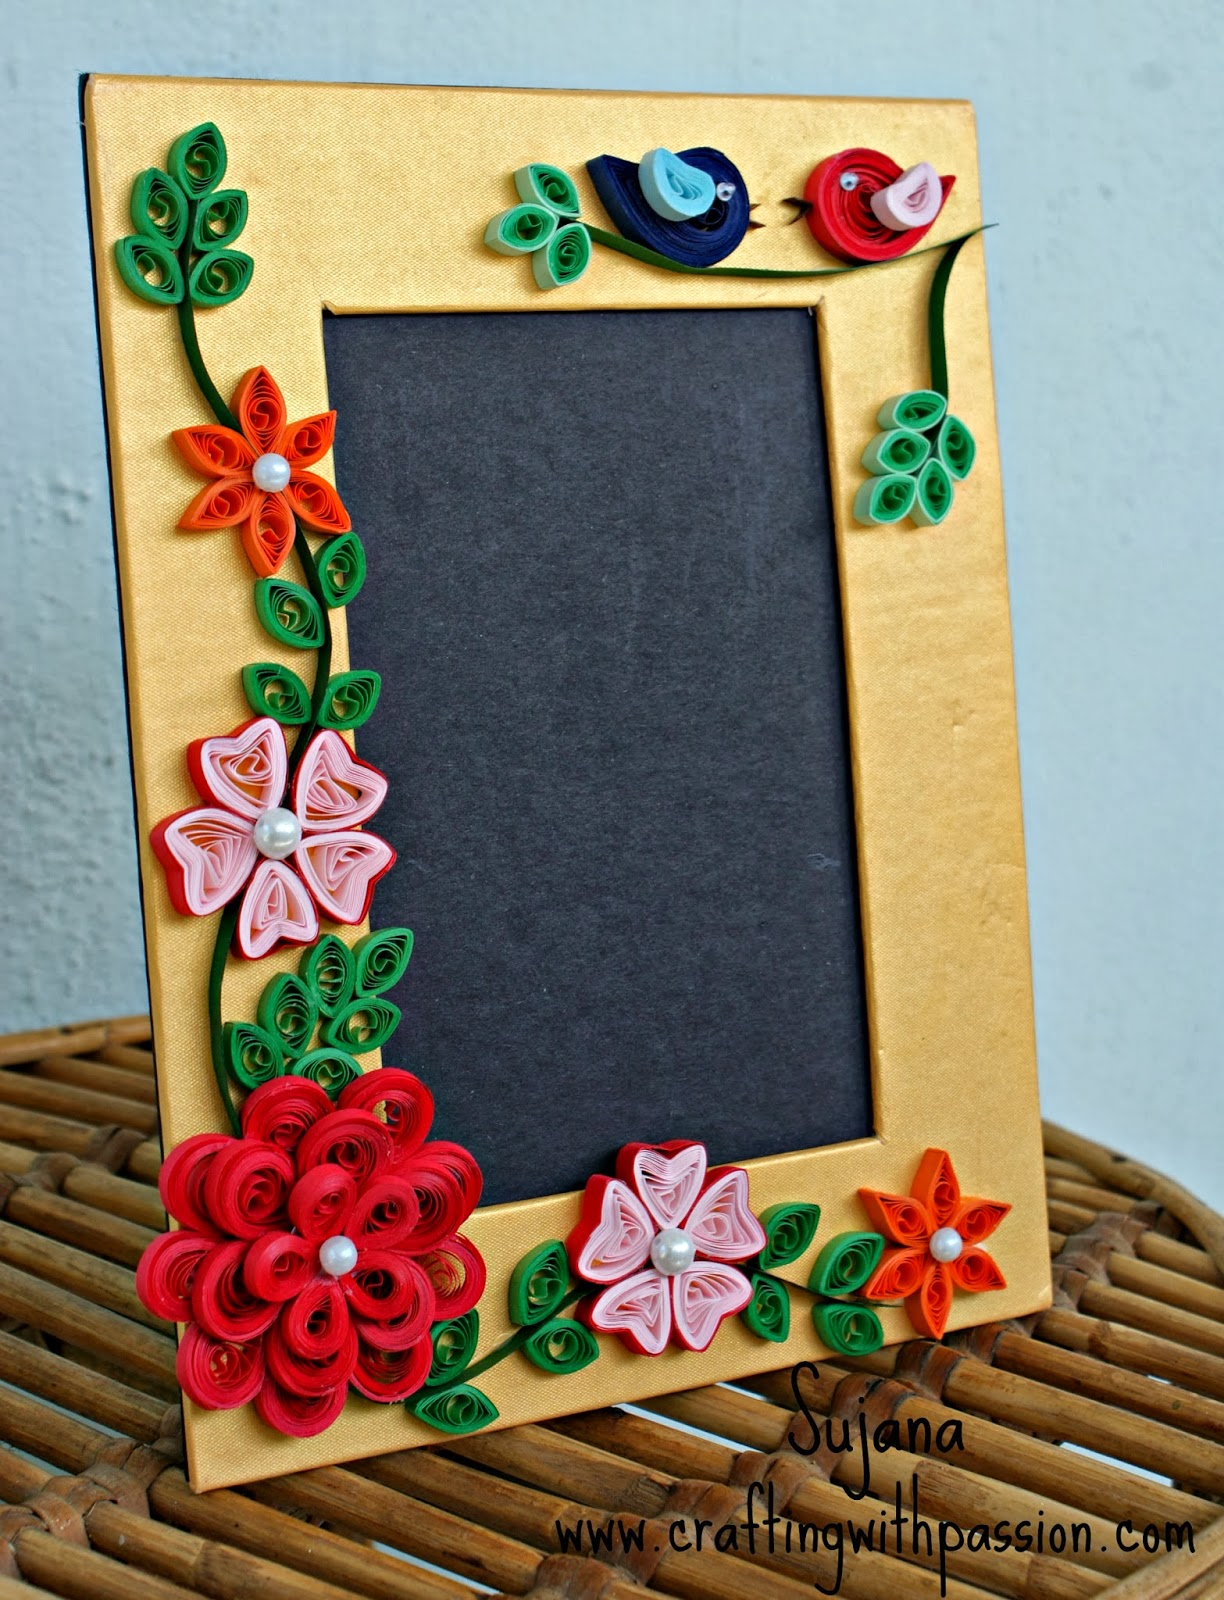 Crafting with passion my first quilled photo frame for Frame designs